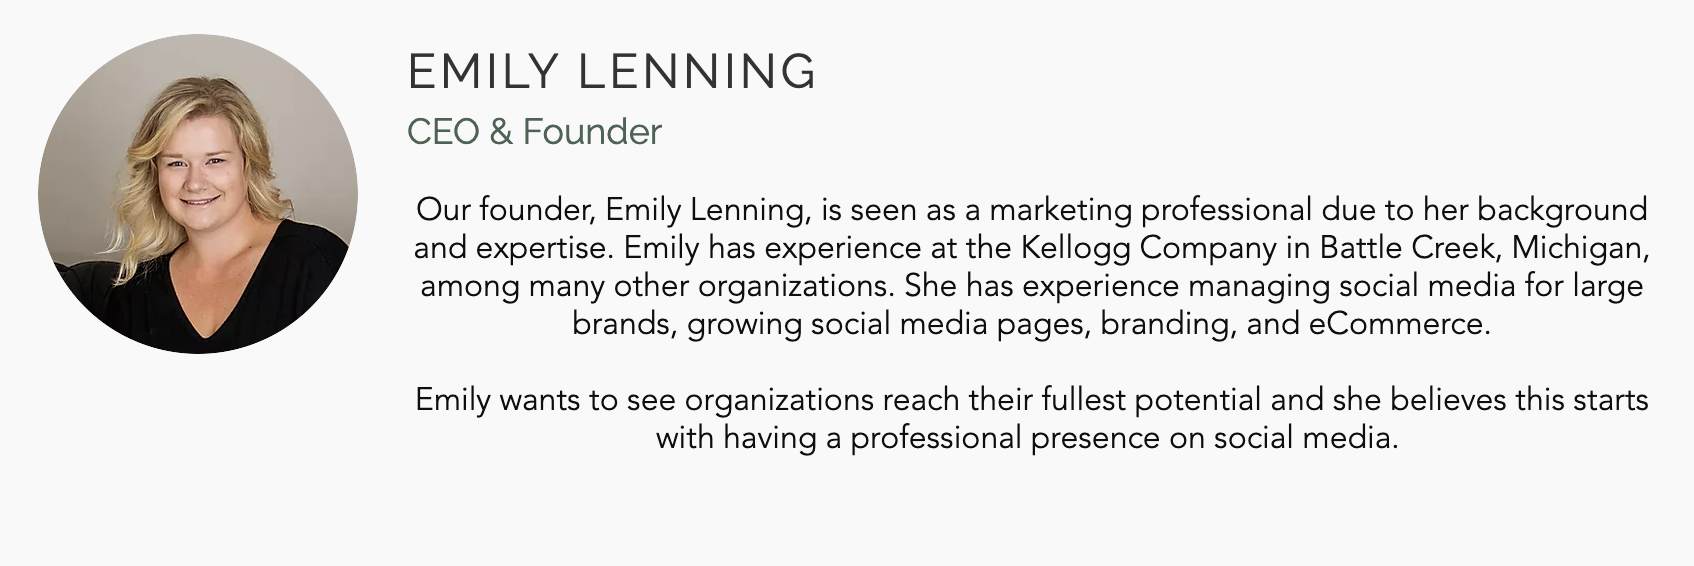 Picture of woman smiling with a bio for Emily Lenning, CEO and founder of Blossom Marketing